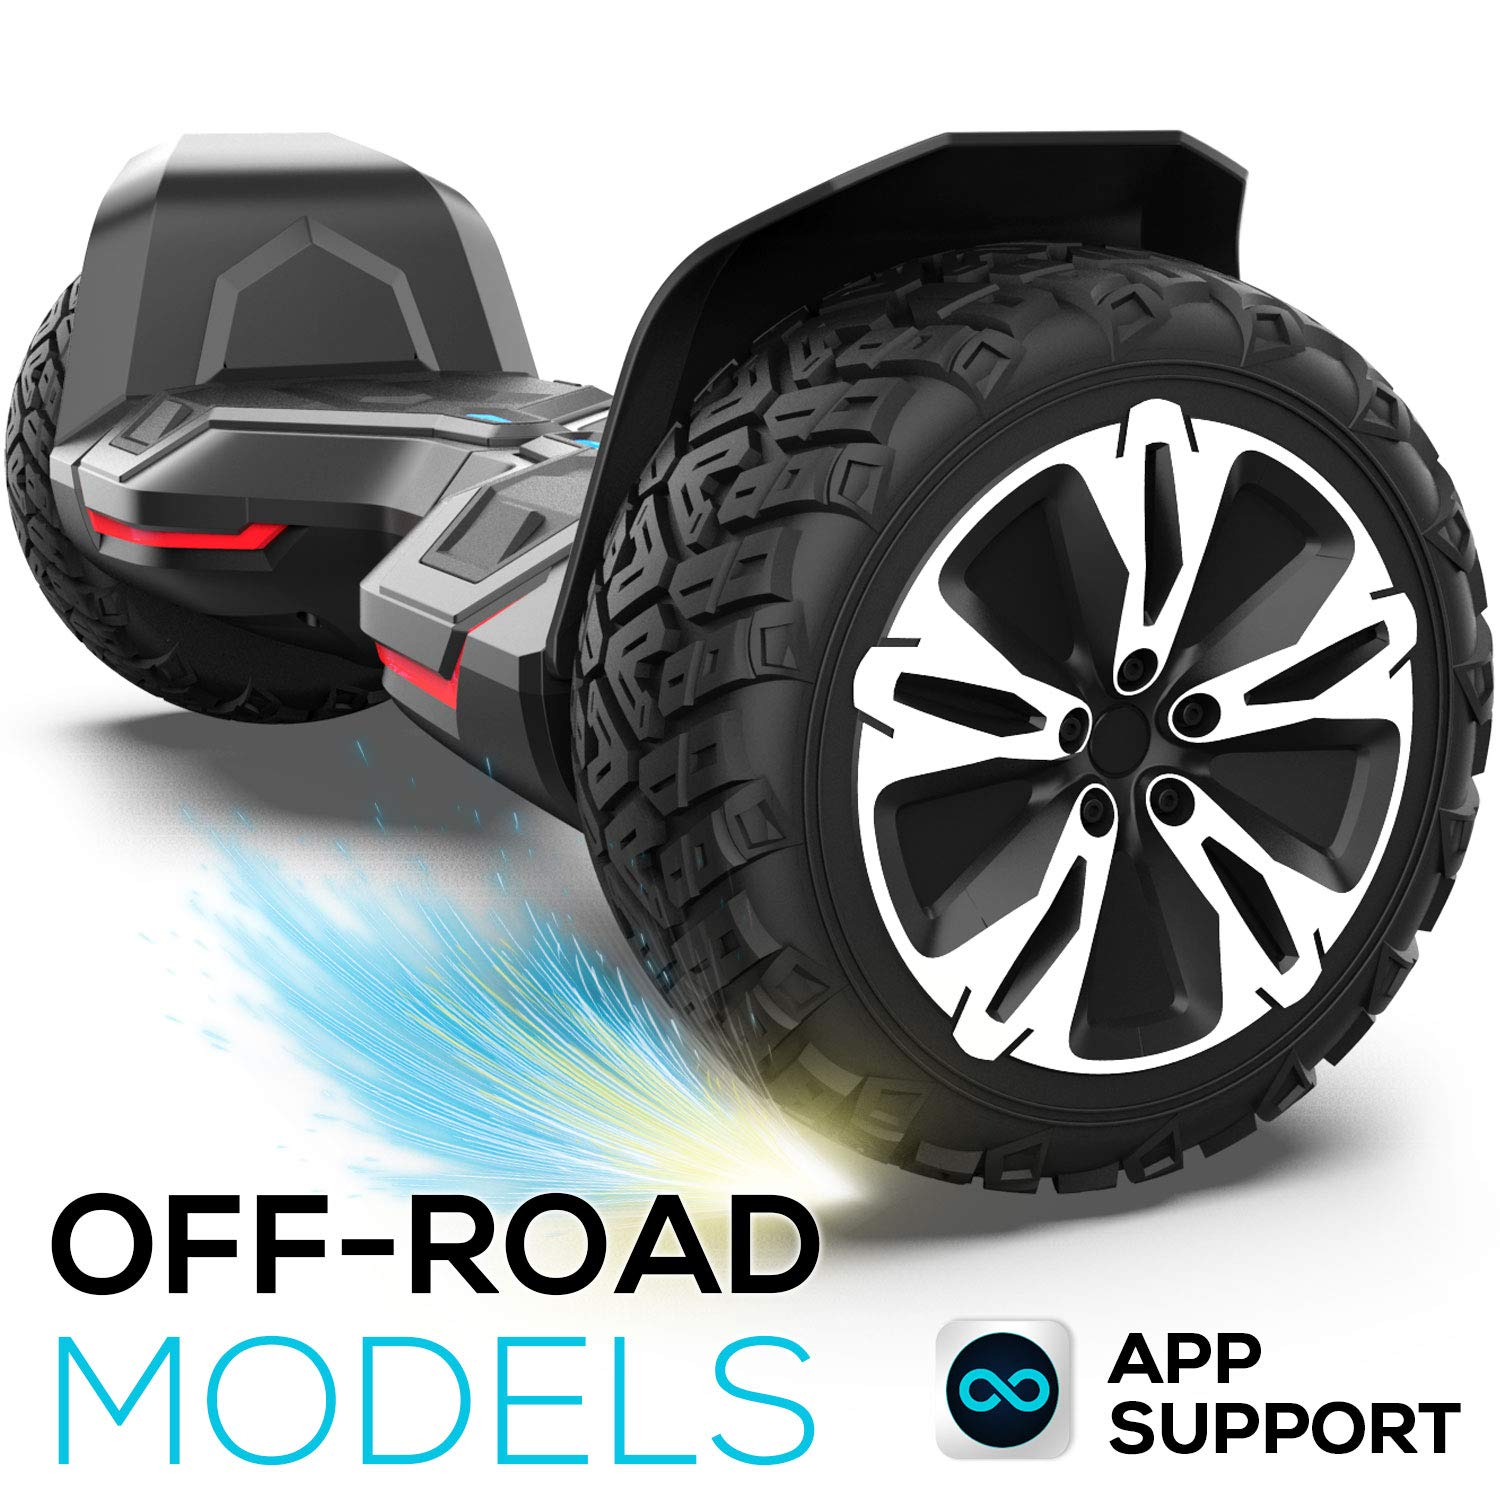 Gyroor Hoverboard Off Road All Terrain Warrior Hoverboards